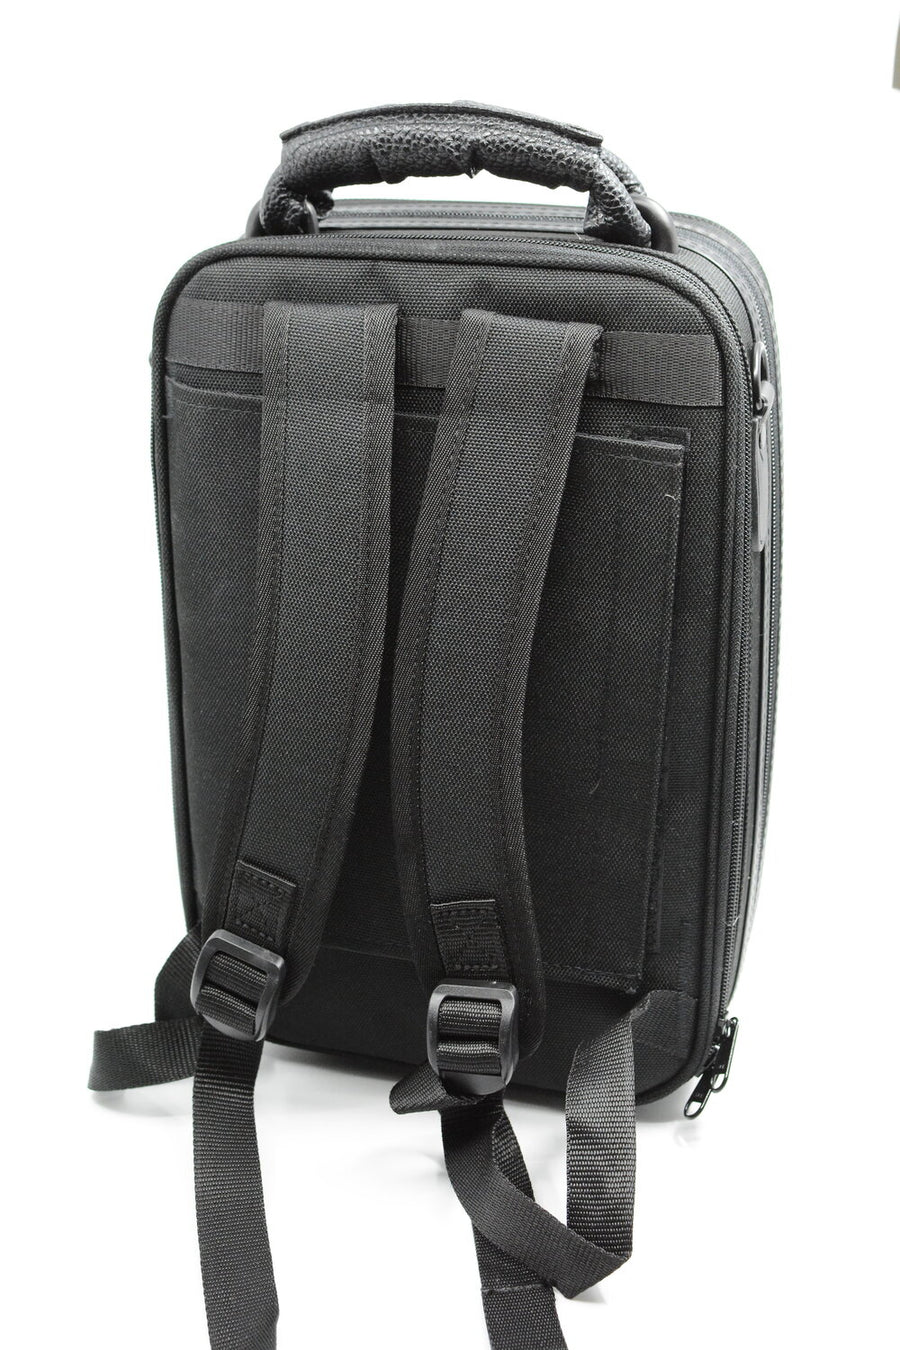 Backpack Style Oboe Case